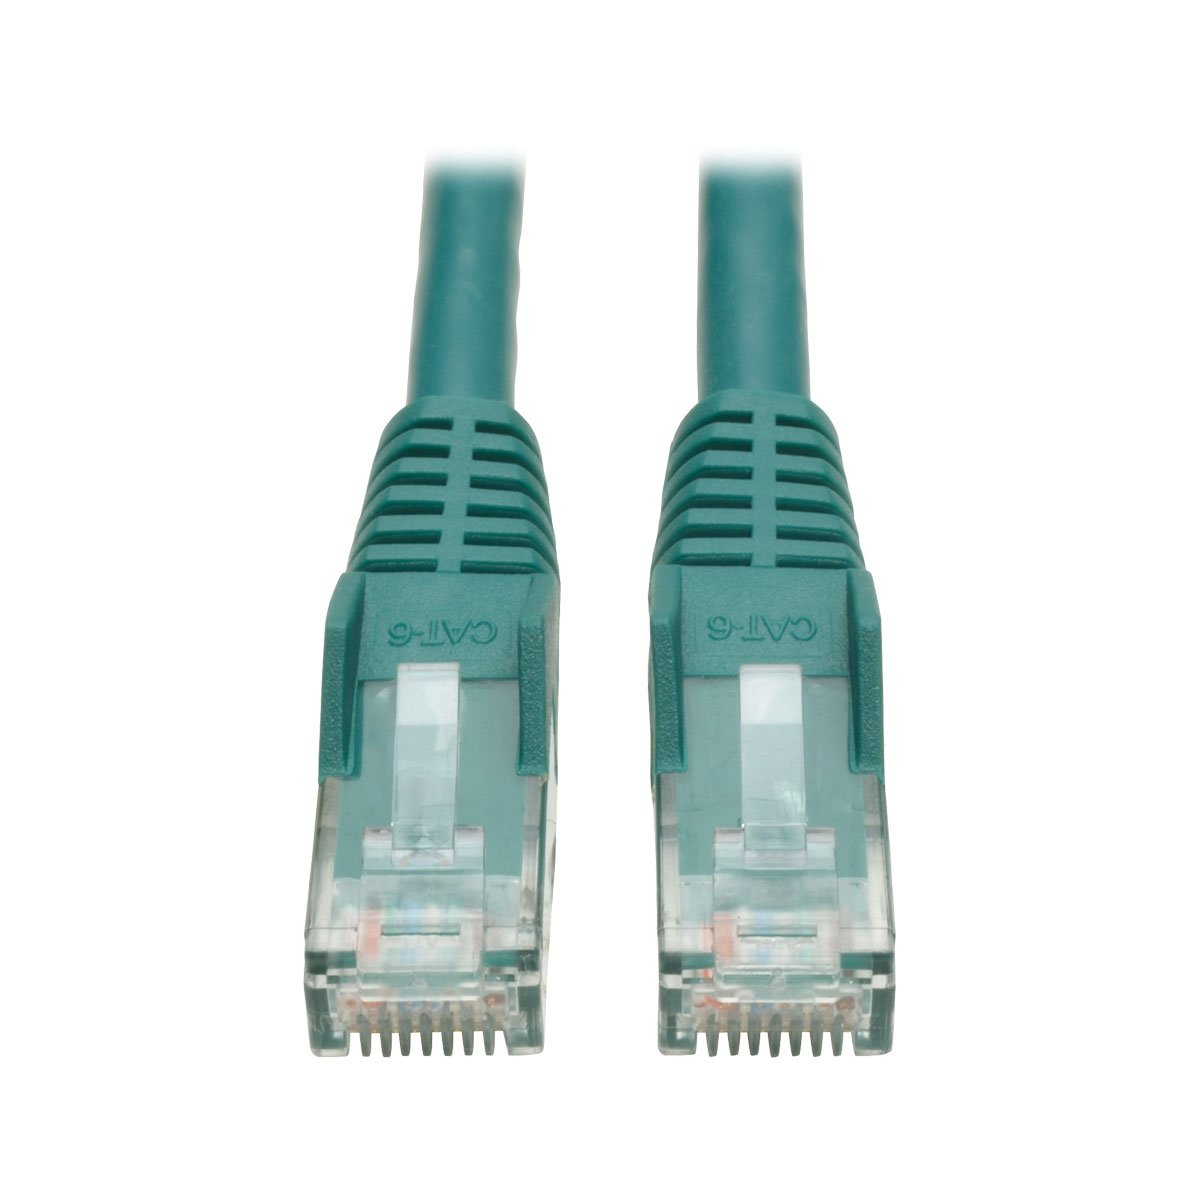 Tripp Lite Cat6 Gigabit Ethernet Snagless Molded Patch Cable 24 AWG 550MHz Premium UTP, Green, RJ45 M/M 35' (N201-035-GN)